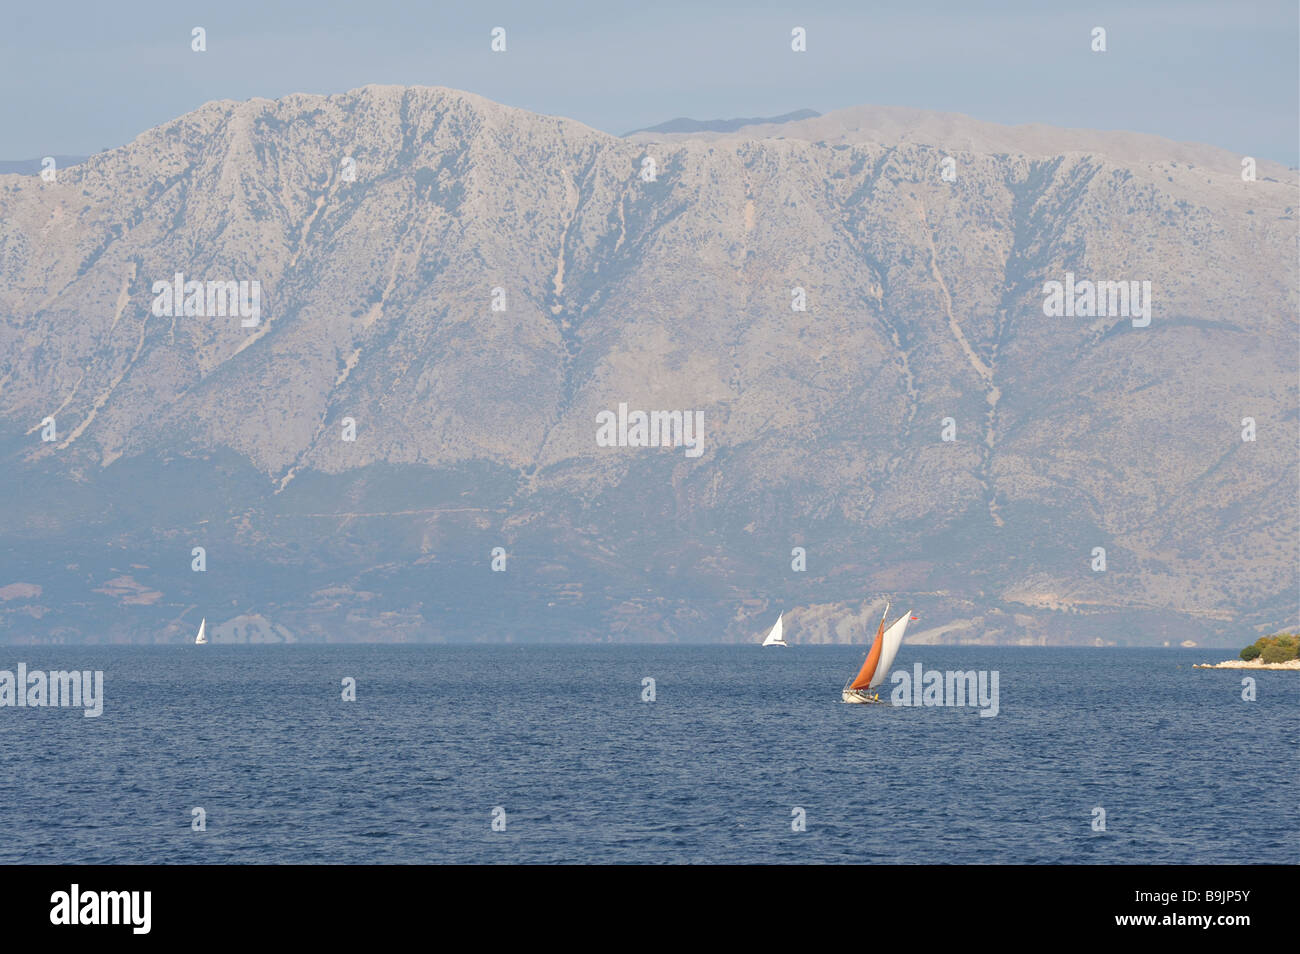 View towards Cape Kefali on the Greek Mainland from the island of Lefkada. - Stock Image